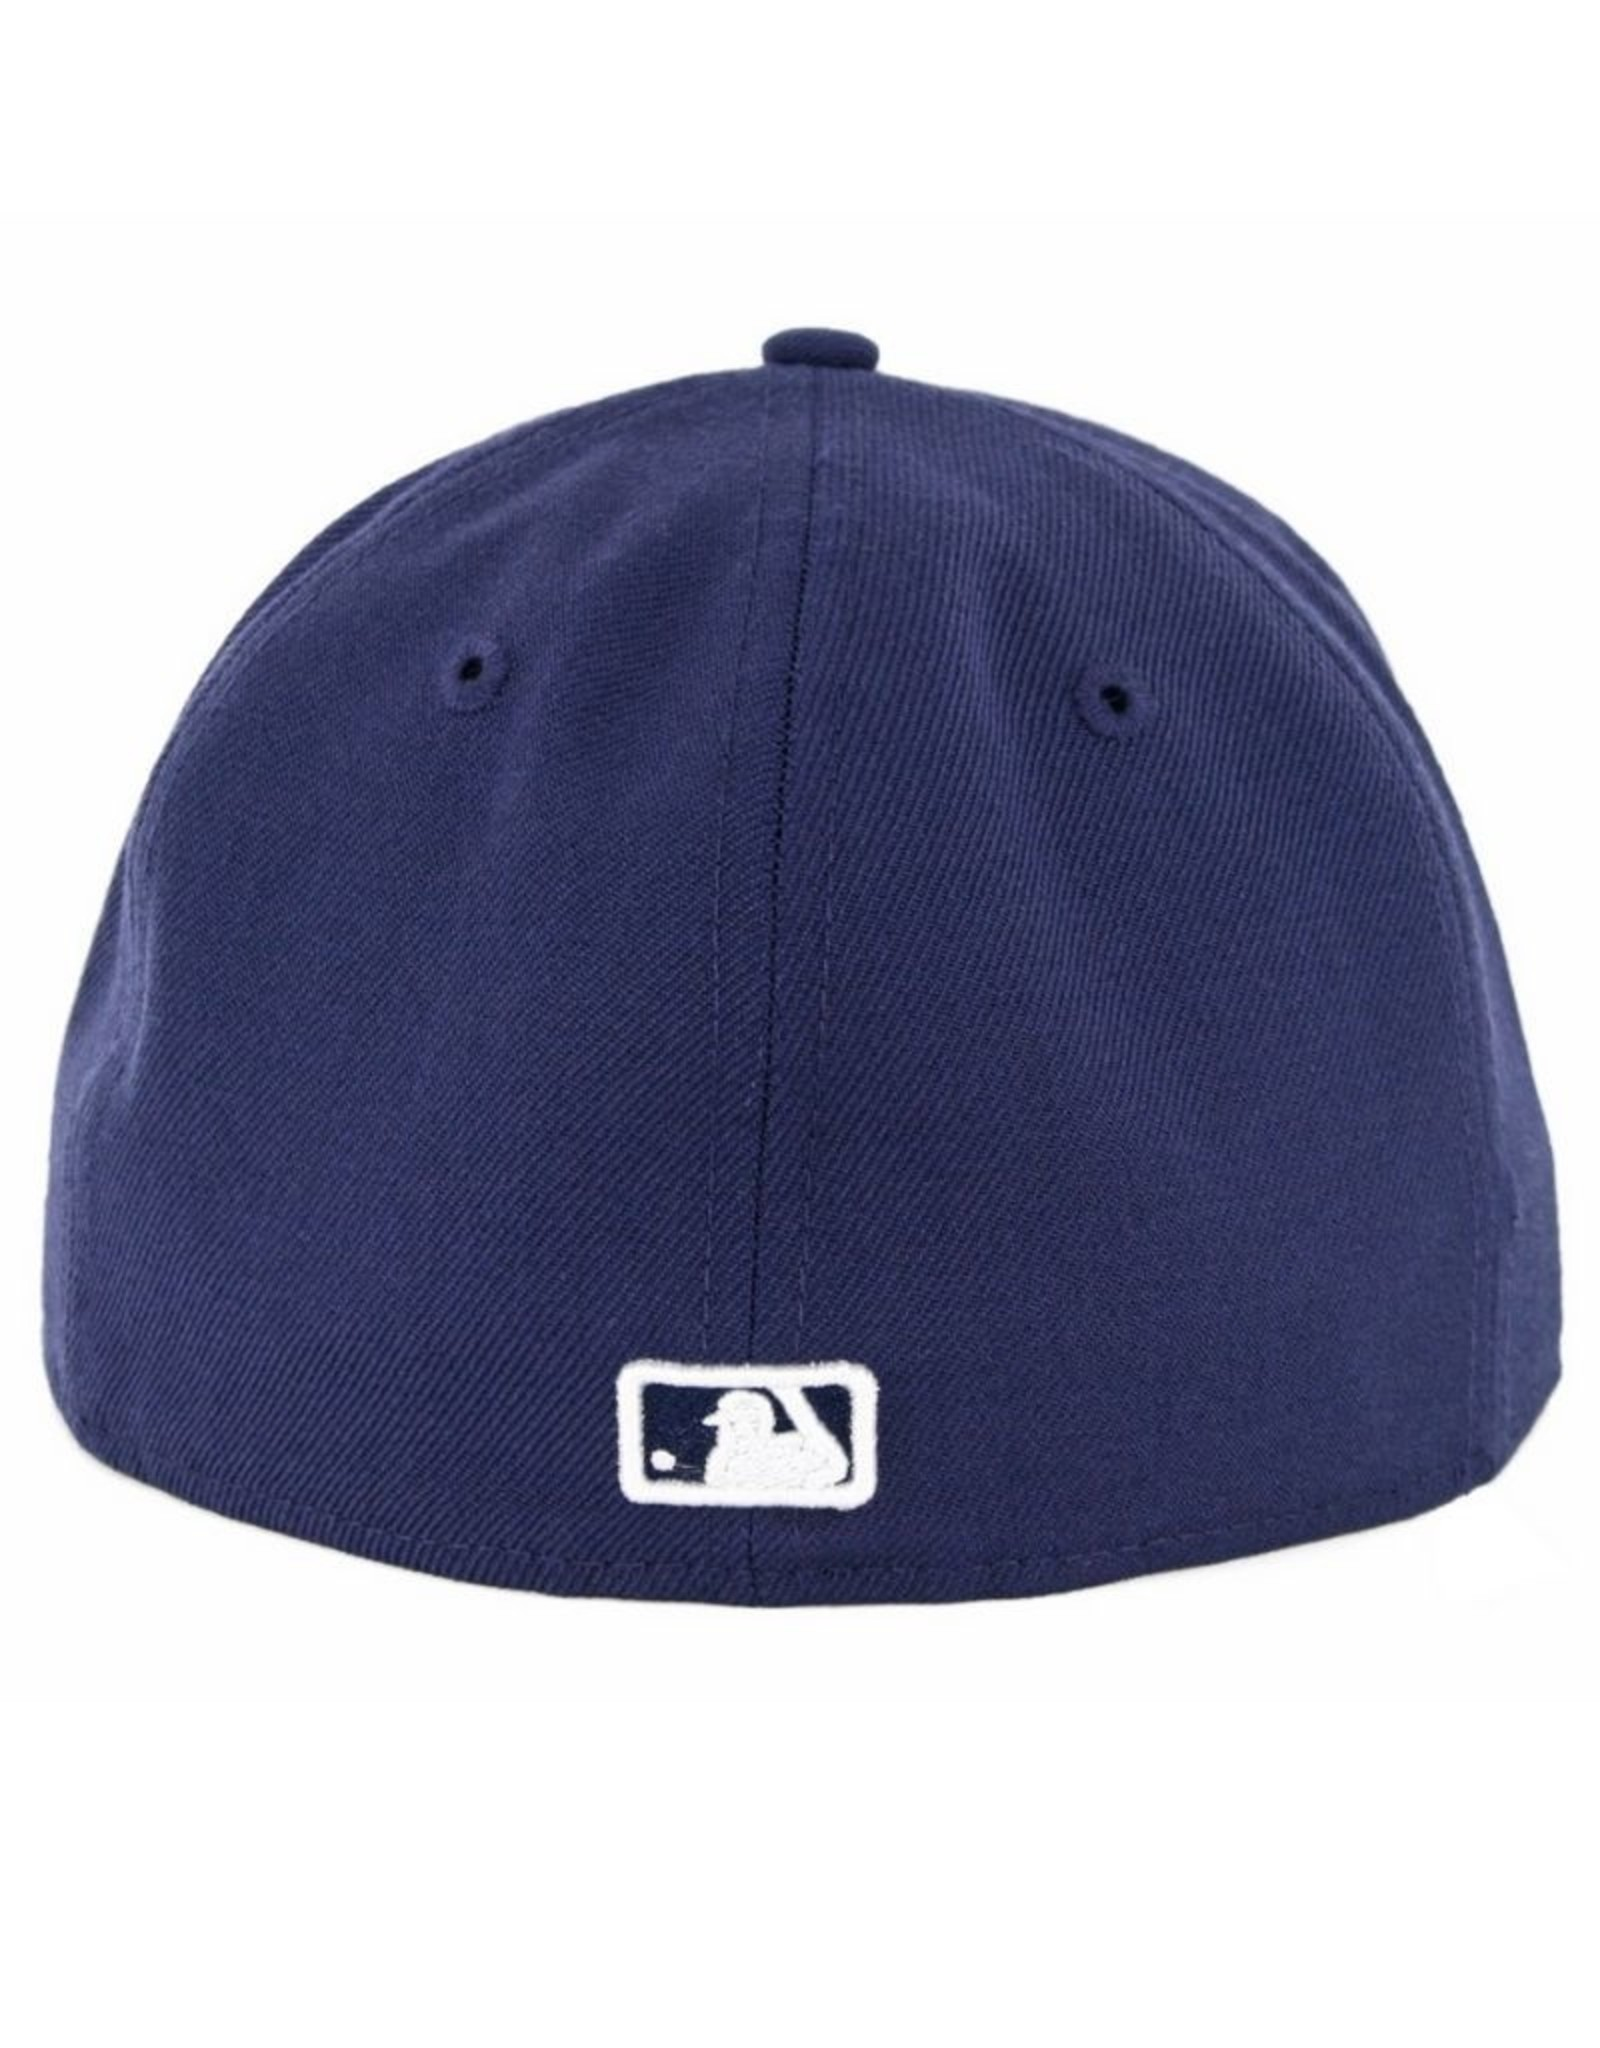 New Era On-Field Home Hat San Diego Padres Navy